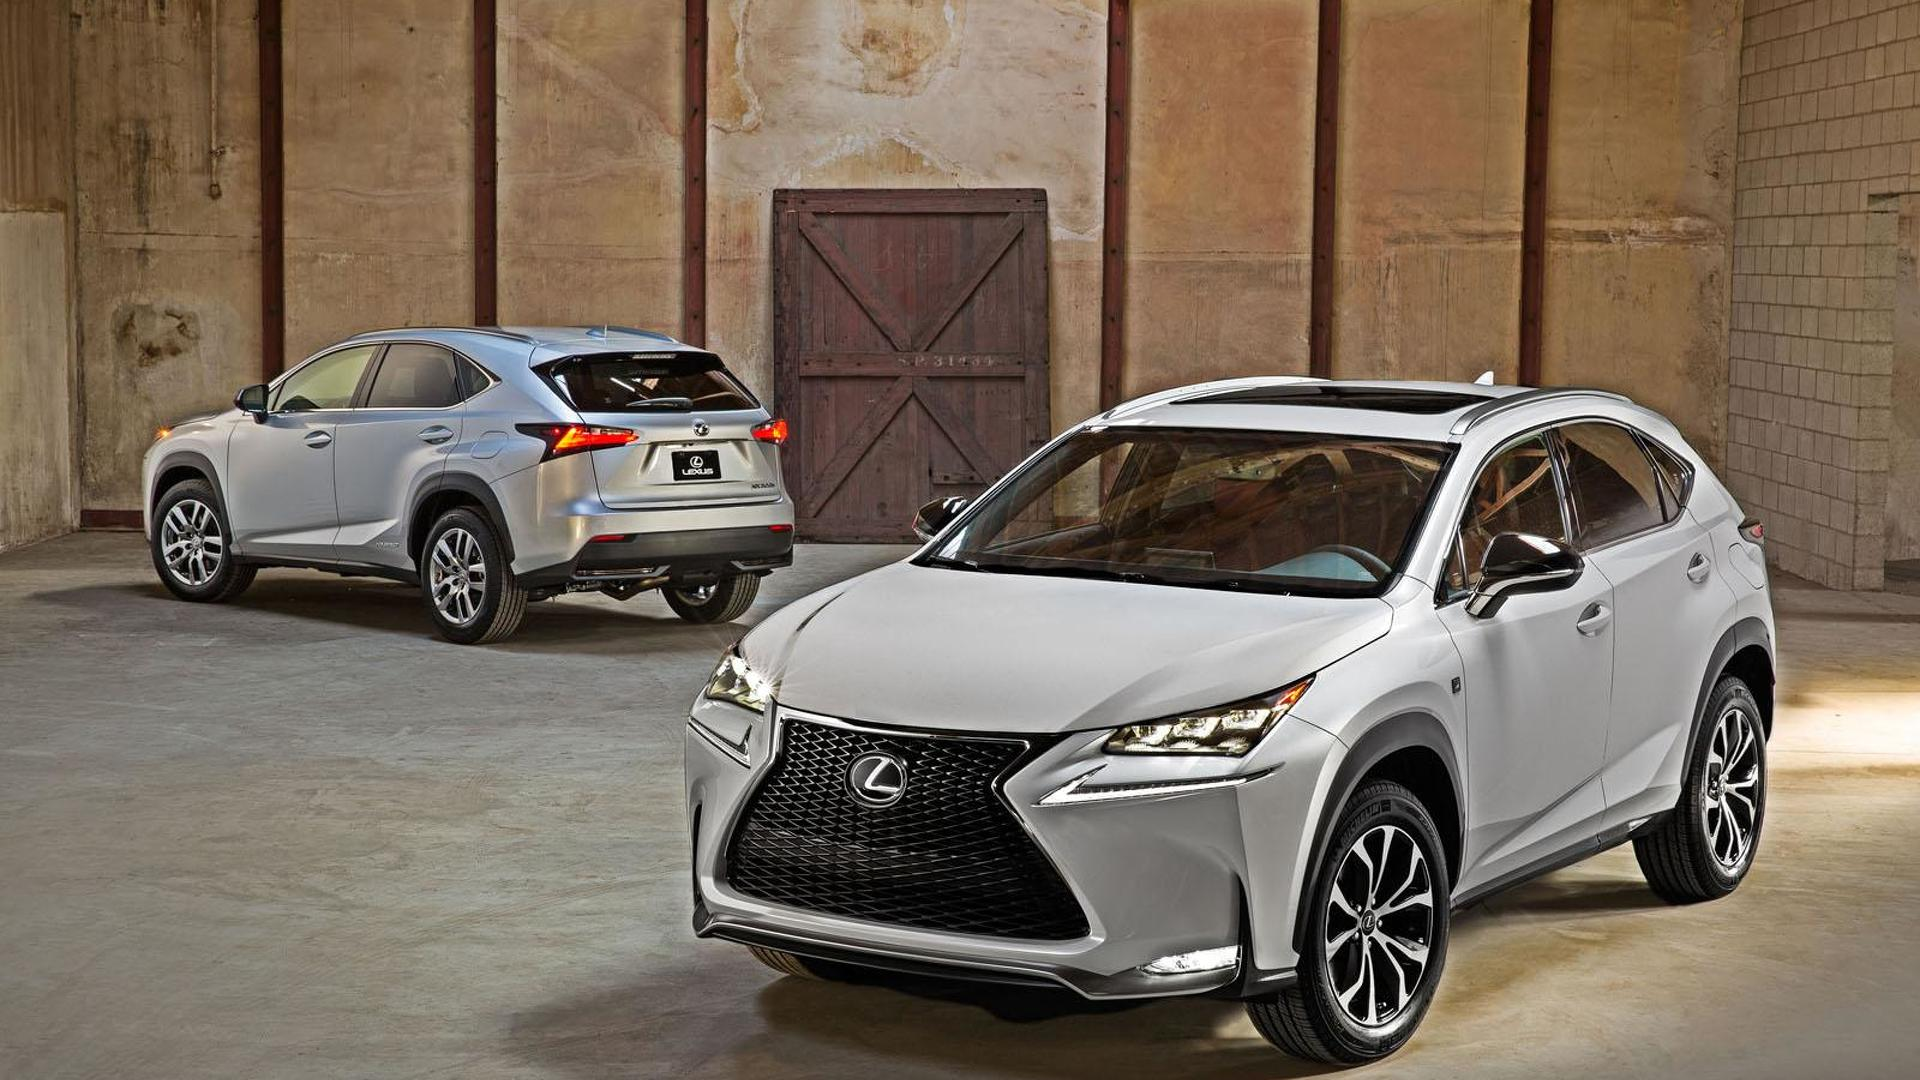 rx share hybrid download image and lexus best gallery